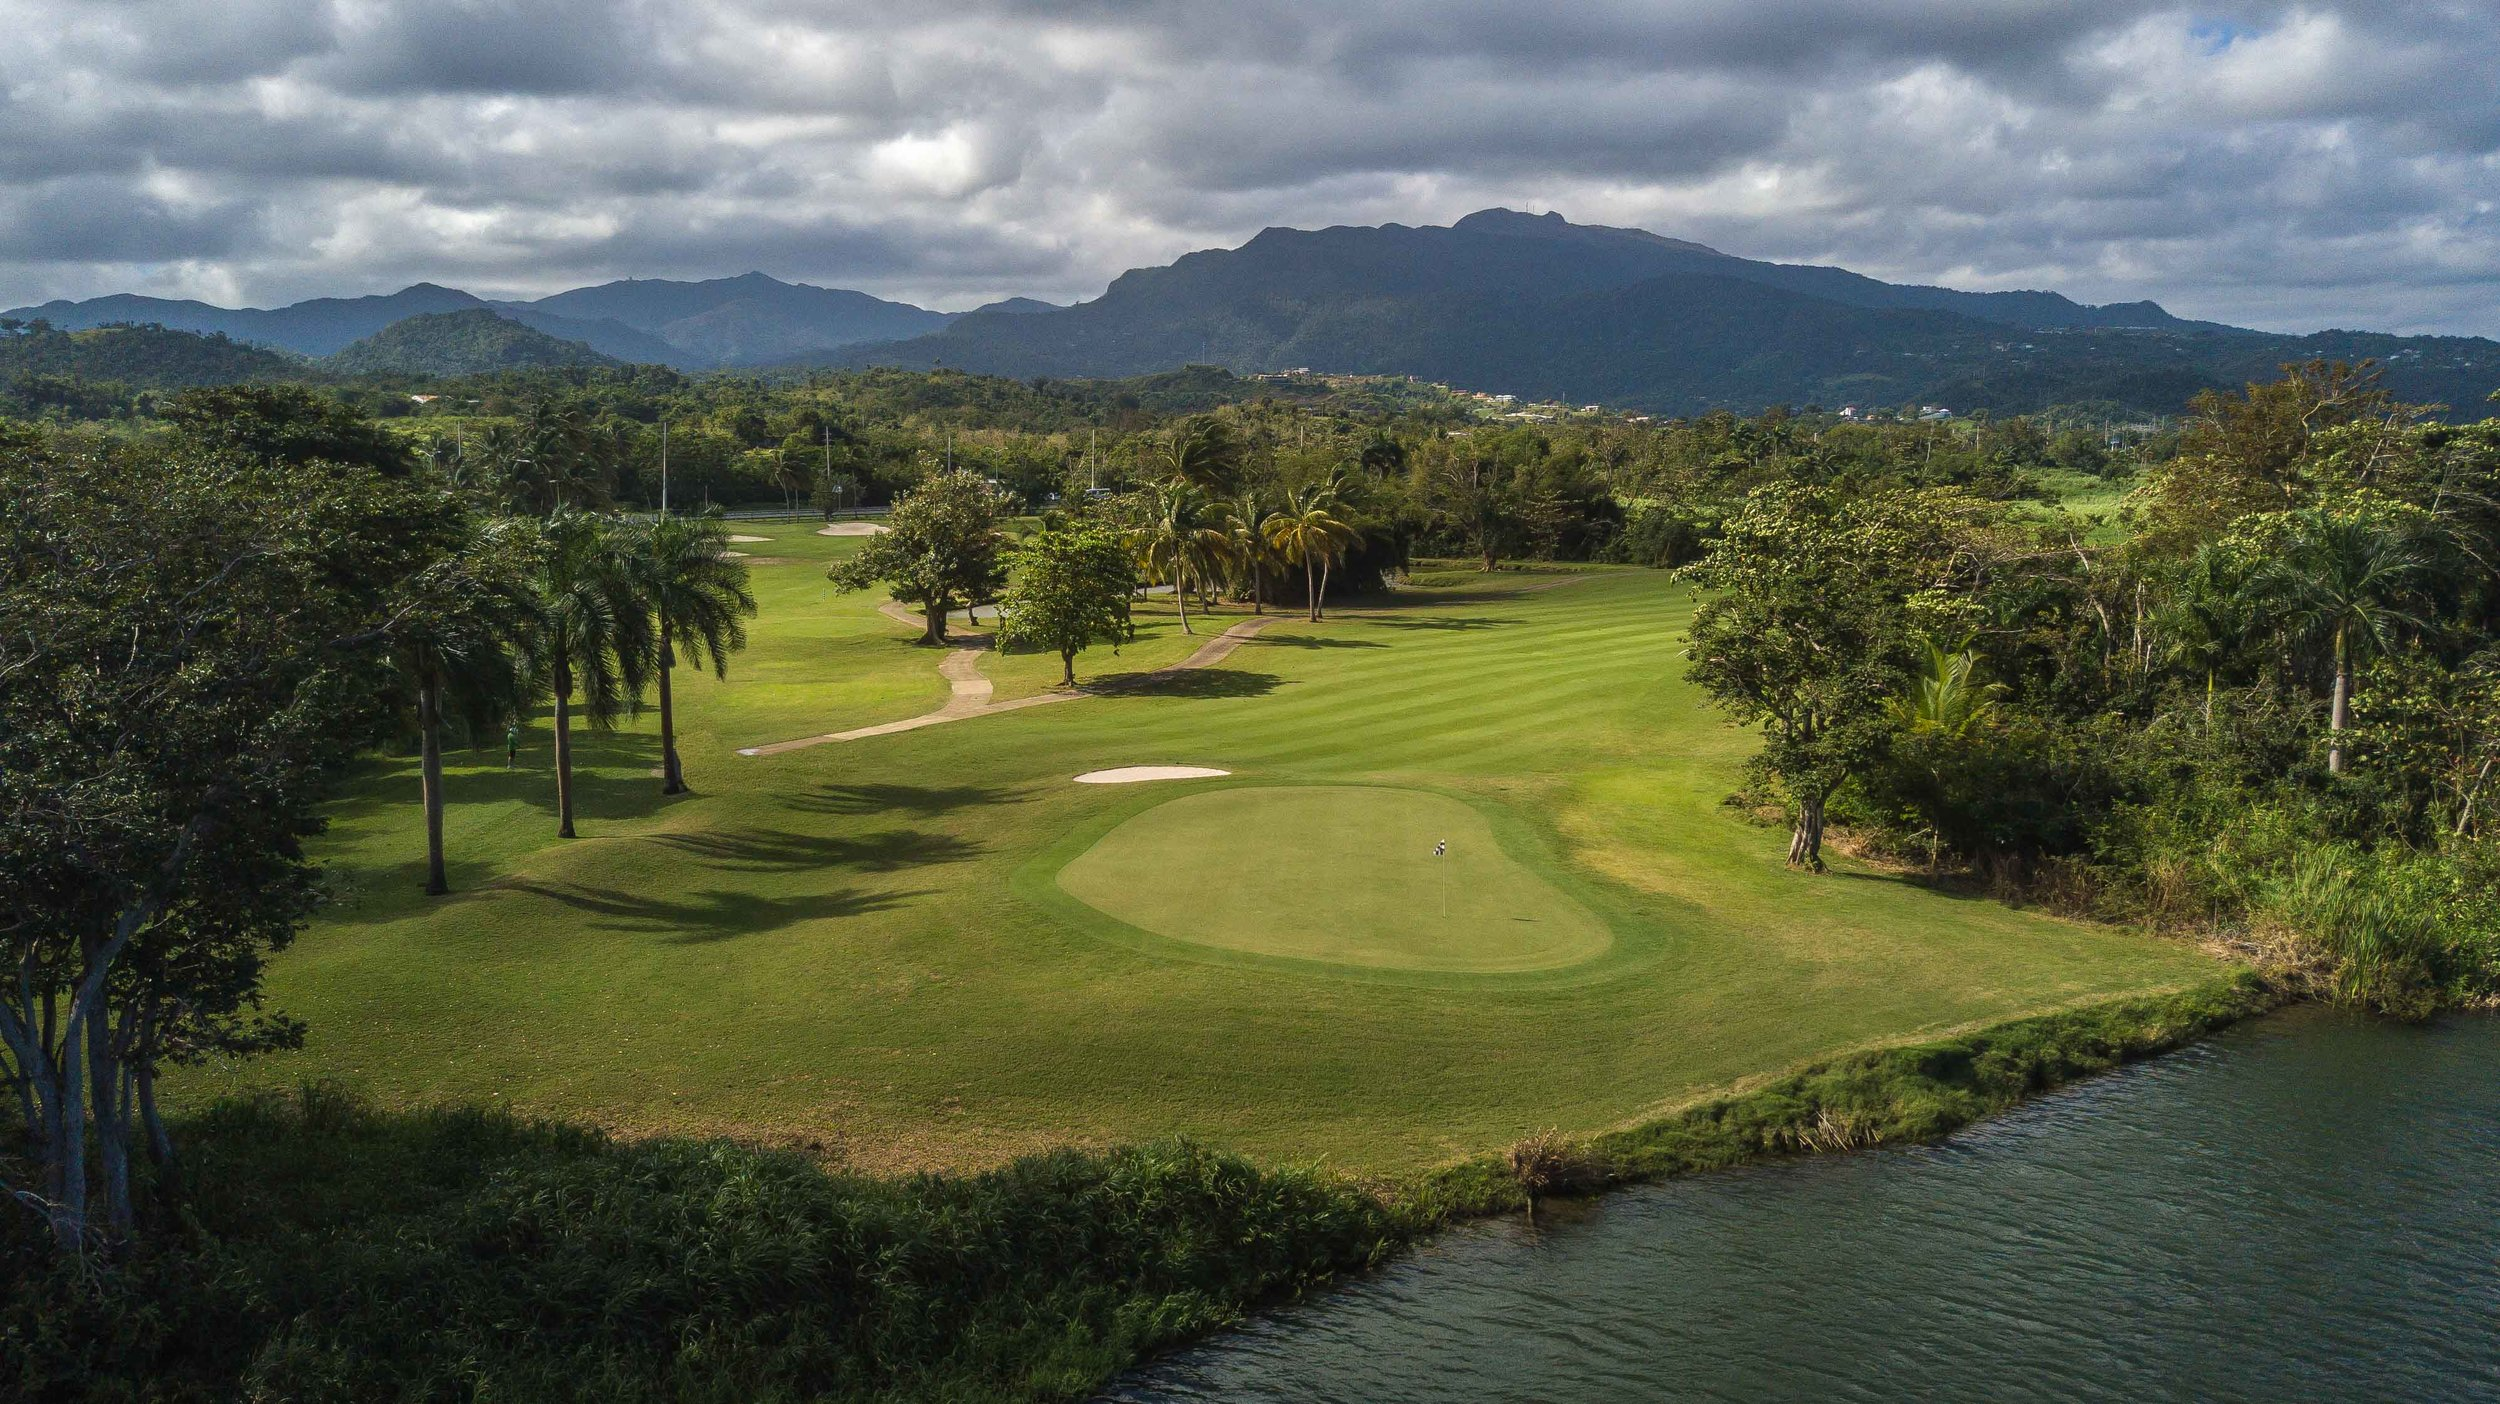 The view from behind the 12th green at Rio Mar's River course.